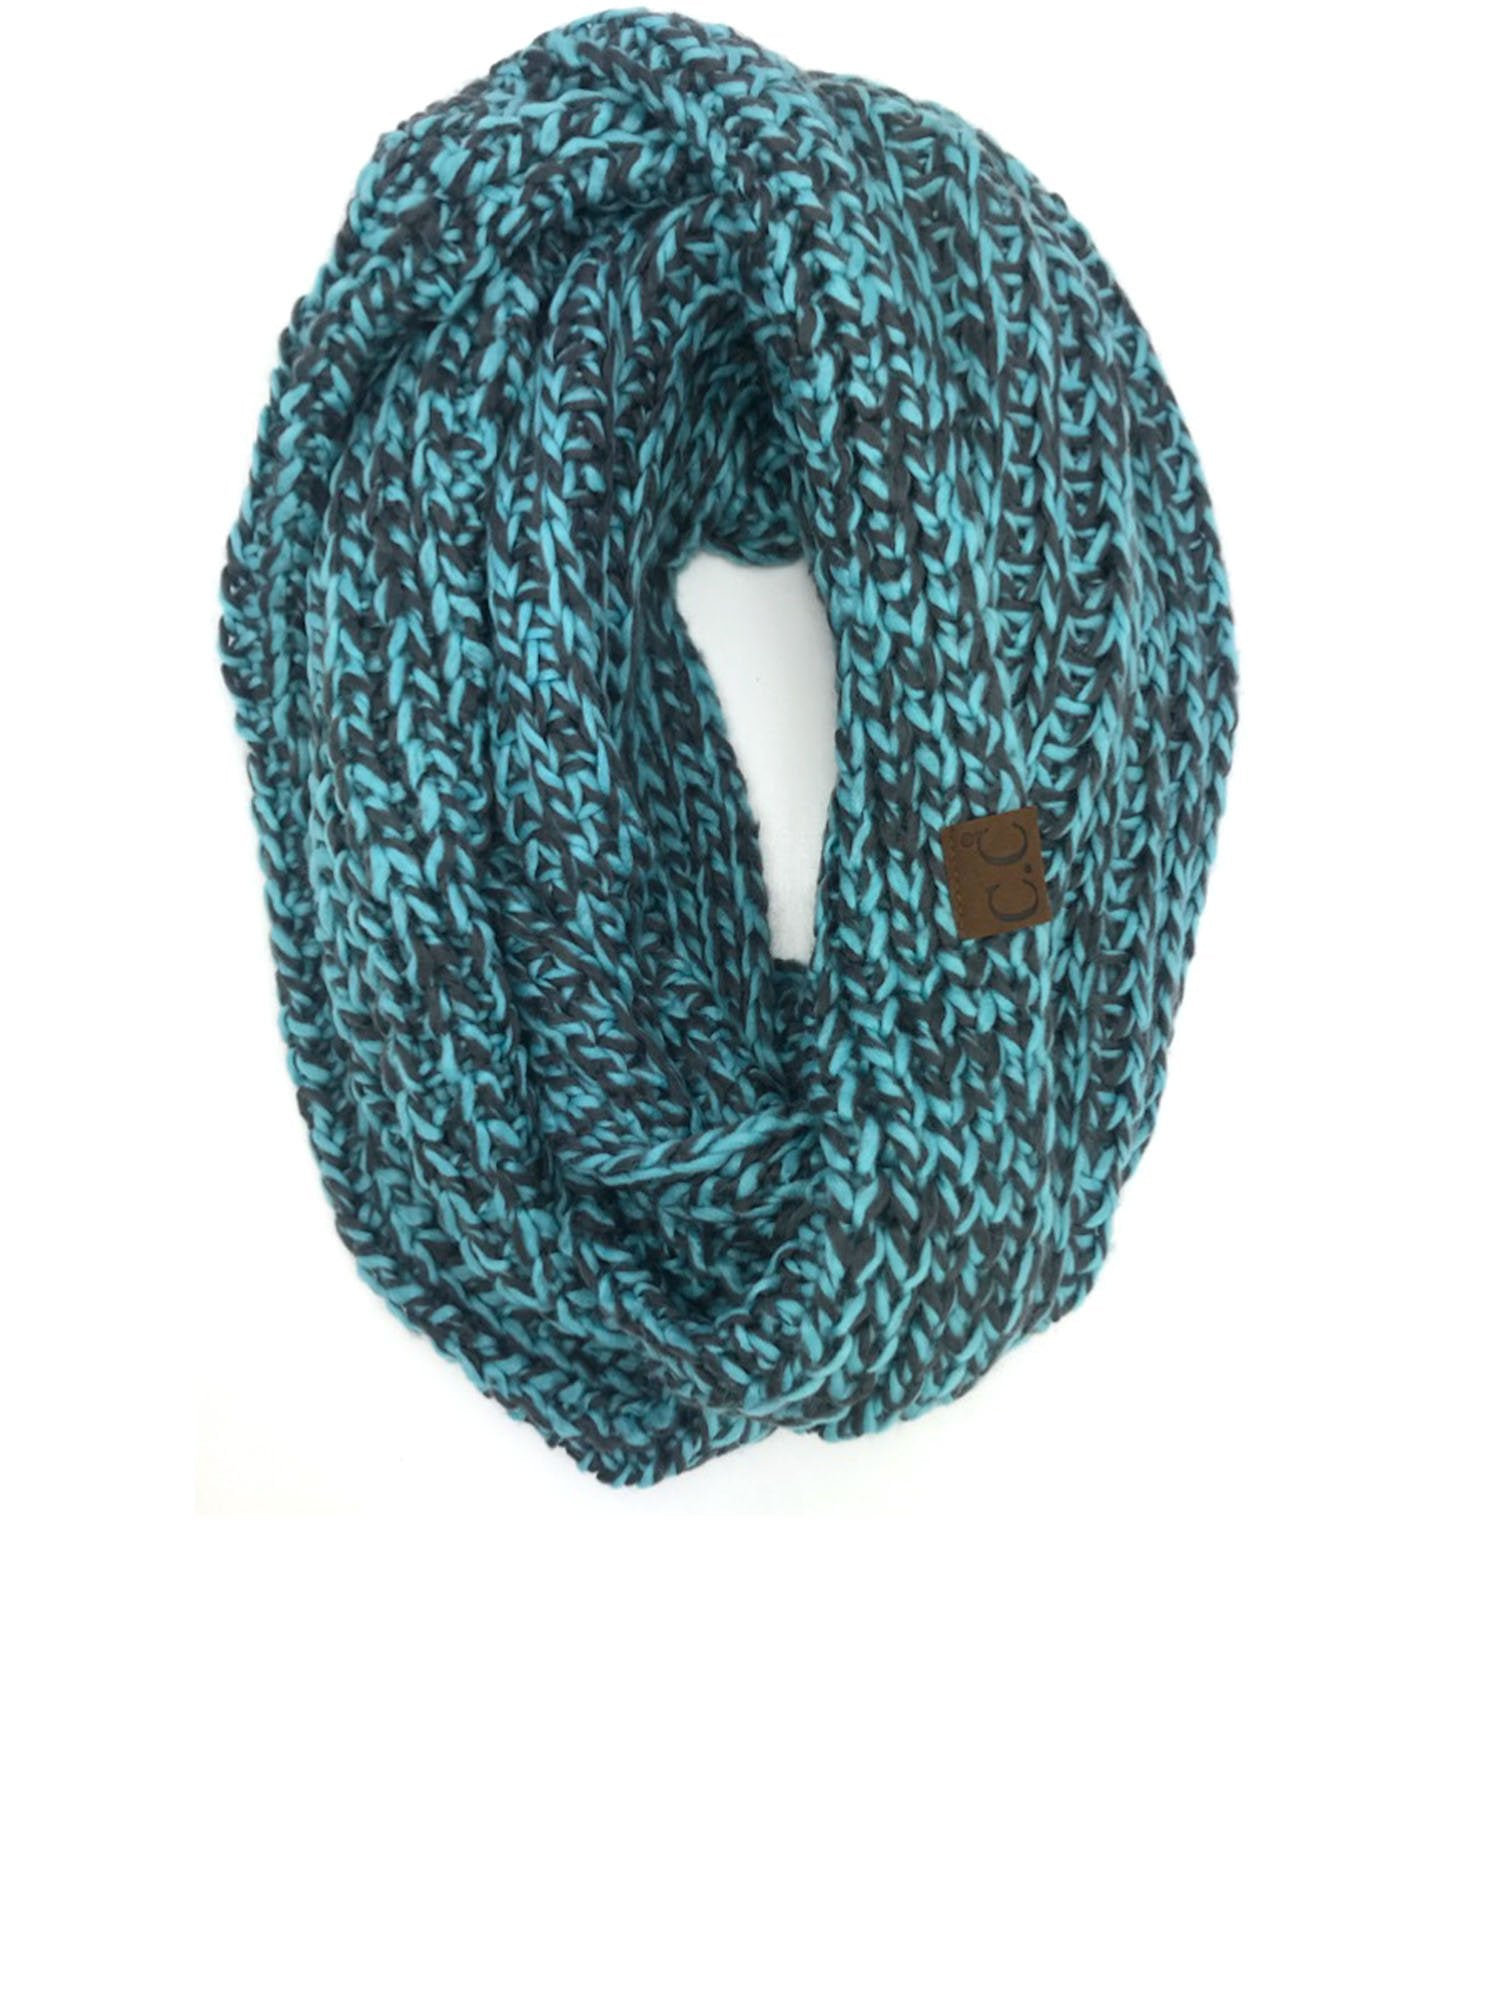 SF-123 BLUE GREY CROCHET SCARF